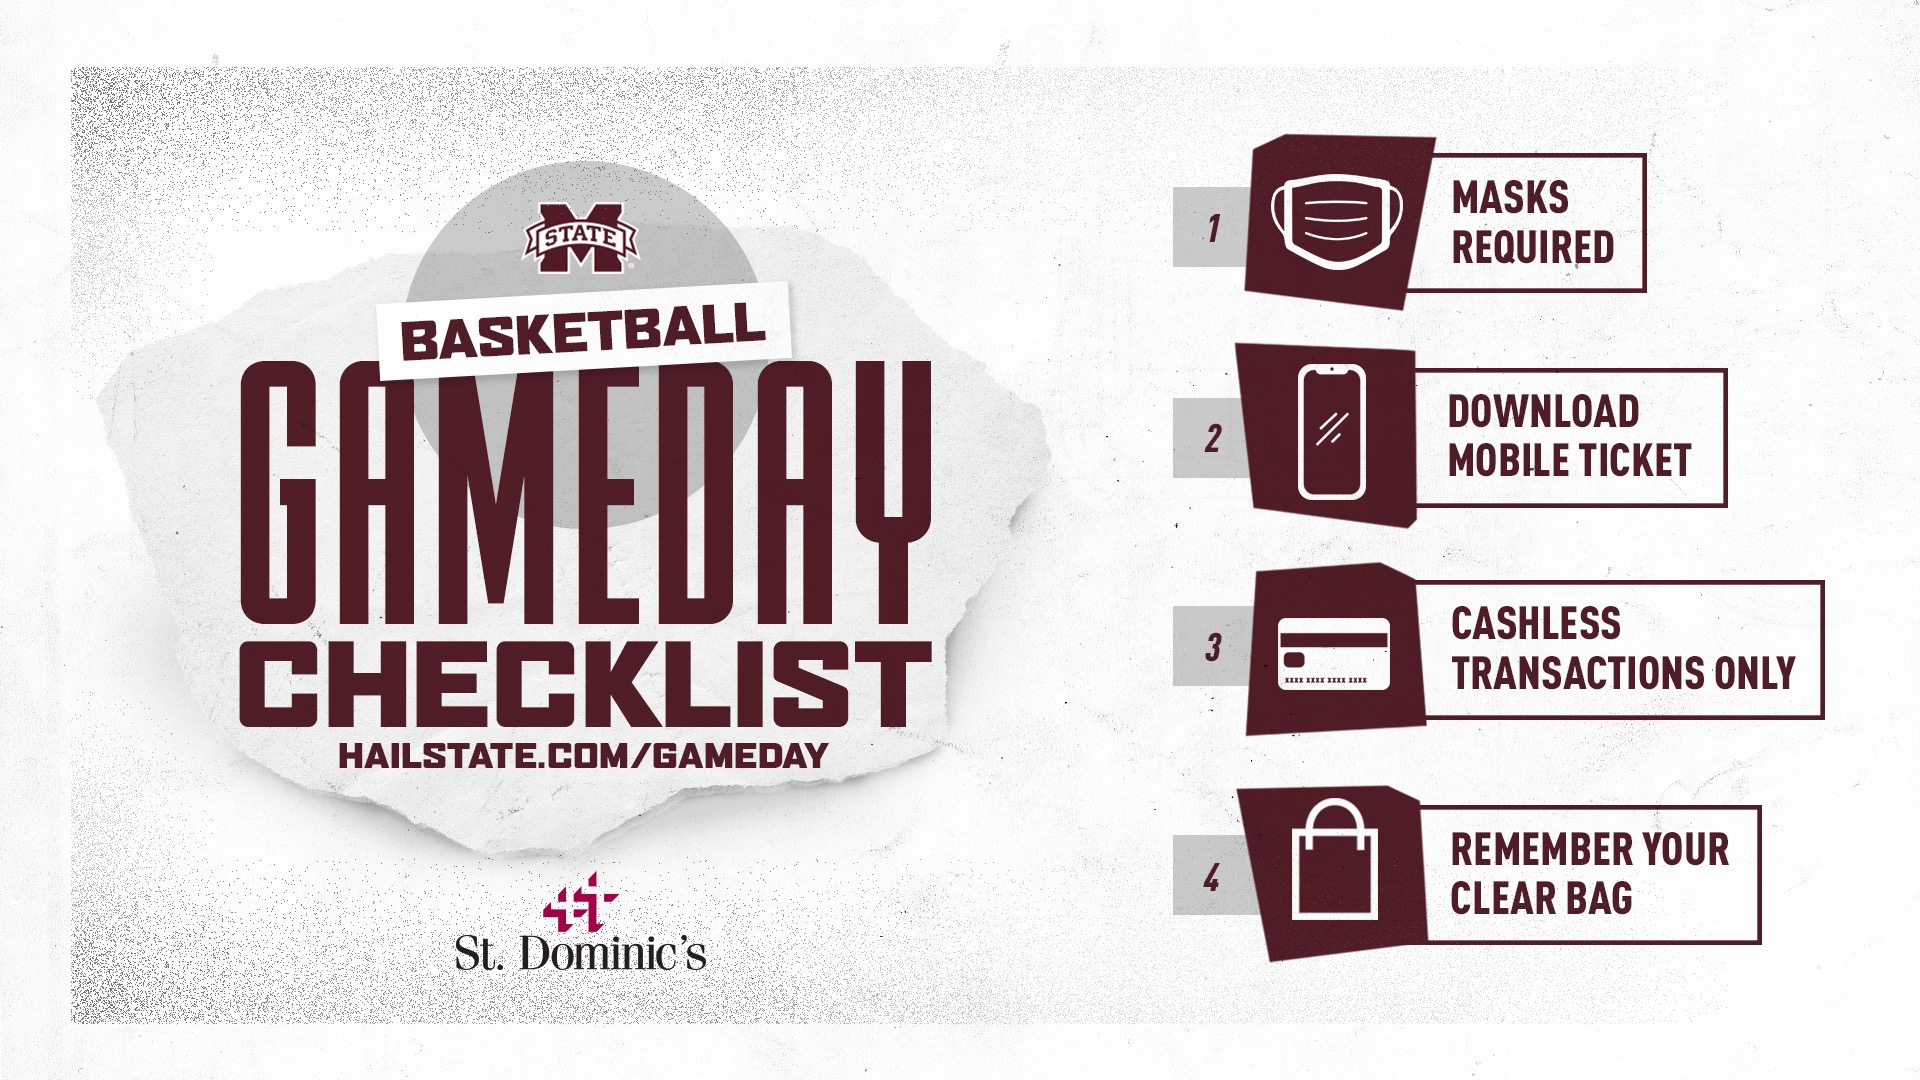 Maroon, white and gray graphic reminding MSU basketball fans about face masks, mobile tickets, cashless transactions, gate entry and clear bag policy